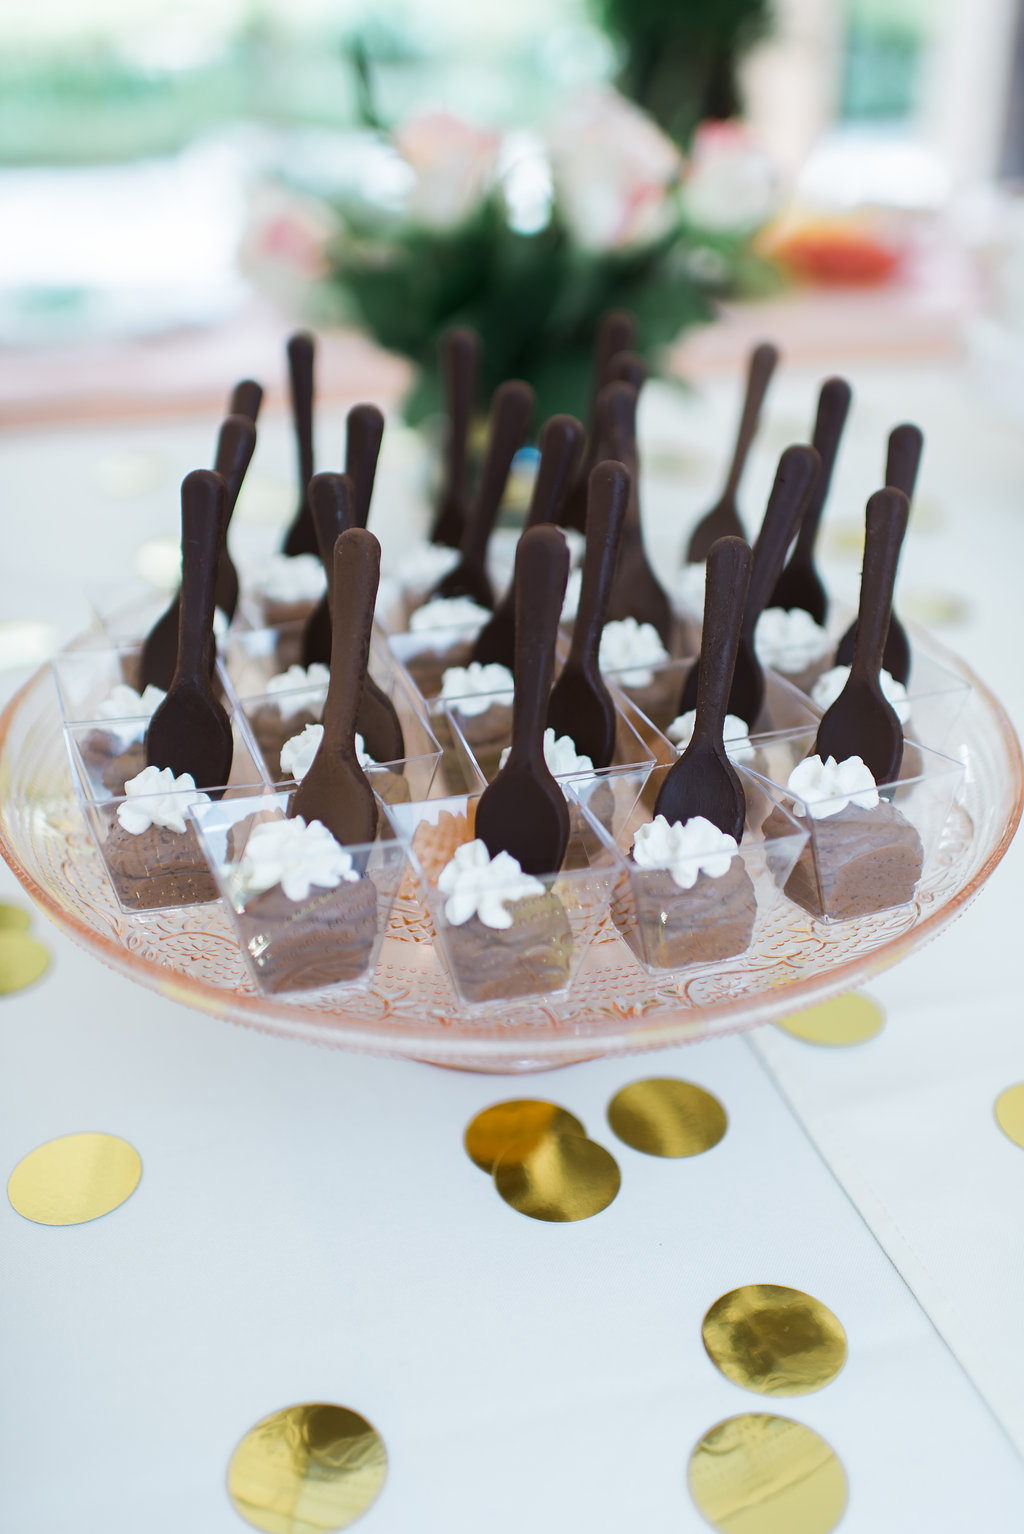 chocolate-cups-large-platter